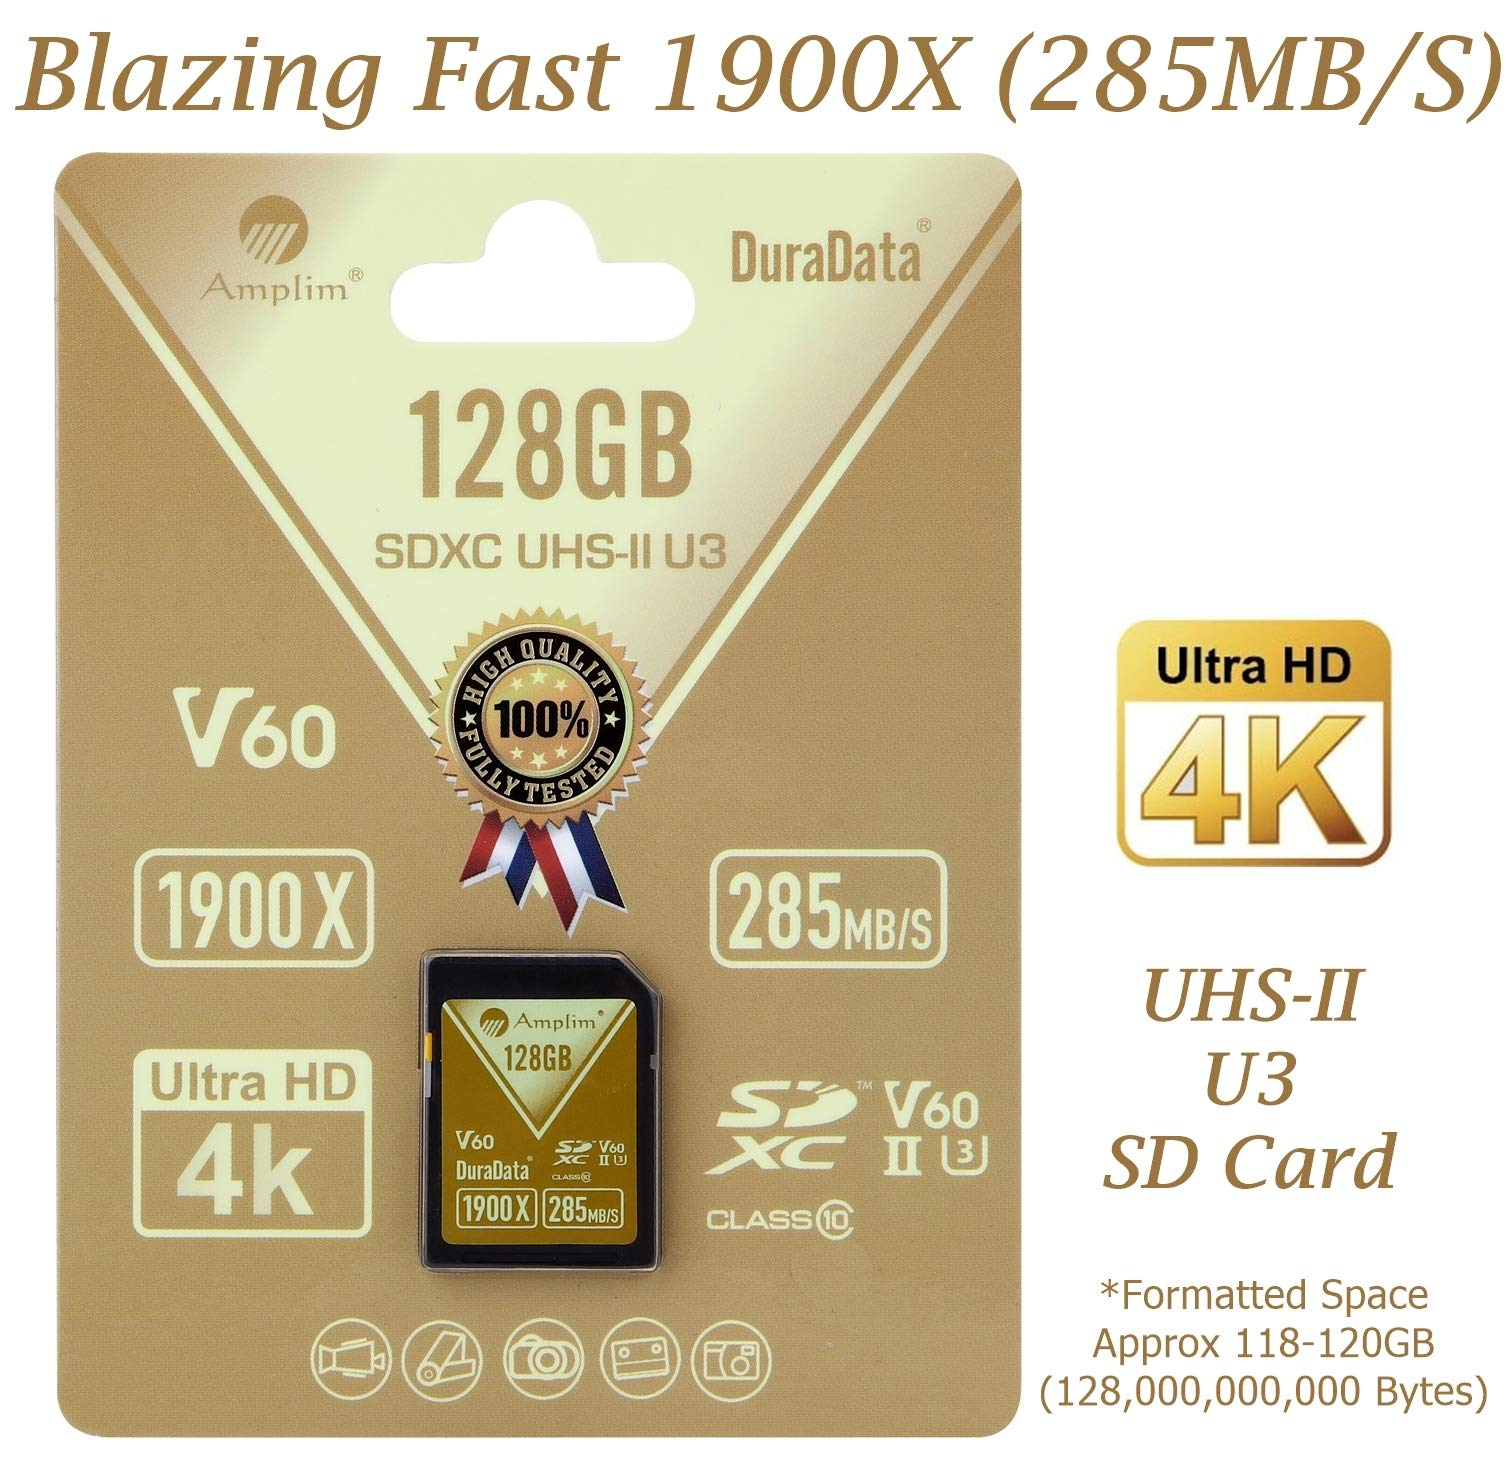 Amplim extreme high speed 32gb uhs-ii v90 sdxc sd card for 4k 8k uhd video camera camcorder 1 ultra high performance sd card: blazing speed 1900x (285mb/s) transfer rate. Twice the read speed of 1000x card. Newest sd association sd 5. 0 specs v60+ video rating provides 4k continuing shooting (other uhs-ii cards without v ratings are last generation sd 4. 0 cards). Top rated uhs-ii u3 class10 pro extreme turbo fast high capacity sd card for latest uhs-ii sdxc (sd xc) compatible cameras, accessories, usb-c sd card reader, microsoft surface book 2 and super fast 3d hdr 360 4k dslr and 3d professional photographer memory card: 32, 64 128 and 256 gig uhs-ii high capacity cards for dslr and mirrorless uhs-ii video cameras (sony, fuji, leica, nikon, olympus, panasonic, samsung). Sony alpha a9 a7 a7r mark iii sf card cyber-shot rx1r ii; fujifilm fuji x-t1 x-pro2 x-t2 gfx 50s x-h1 x-e3; leica sl type 601 m10; nikon d850 d500 fx; olympus om-d e-m5 ii om-d e-m10 ii iii pen-f om-d e-m1 mark ii; panasonic lumix dc-g9 gh5s gh5 gh4; samsung nx1; black magic ursa; support all uhs-ii devices backward compatible with uhs-i cameras (note: speed of uhs-ii card will be limited by the uhs-i sd slot): sony cyber-shot dsc w800 w830 dsch300 alpha a7r ii dsc-rx10 iv a6500 a9 a6300 a99 ii; canon powershot sx720 sx730 sx530 hs elph 180 190 is g7 x 5d mark iv iii ii eos 80d 5ds r rebel t7i t6 t5 kiss x70 x9 x9i 1300d 1200d m100 sl2 200d m56d m10 m677d 9000d 800d; nikon coolpix l32 l340 b500 d3400 d5300 d3300 d750 d7200 d7500 d5600